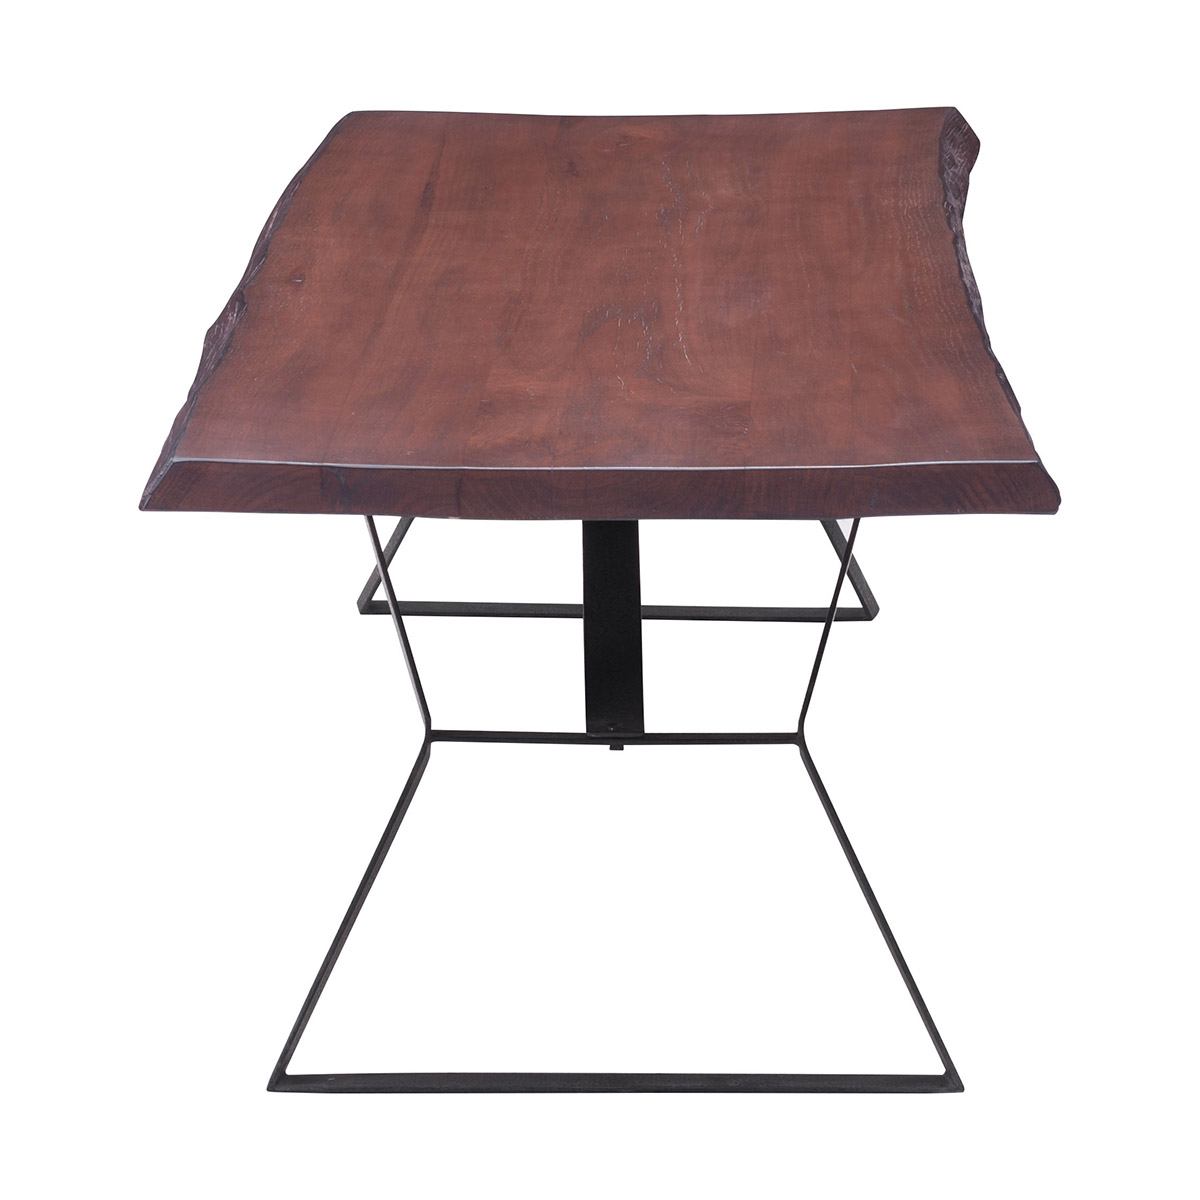 Zuo era omaha coffee table distressed cherry oak boost home for Zuo coffee tables